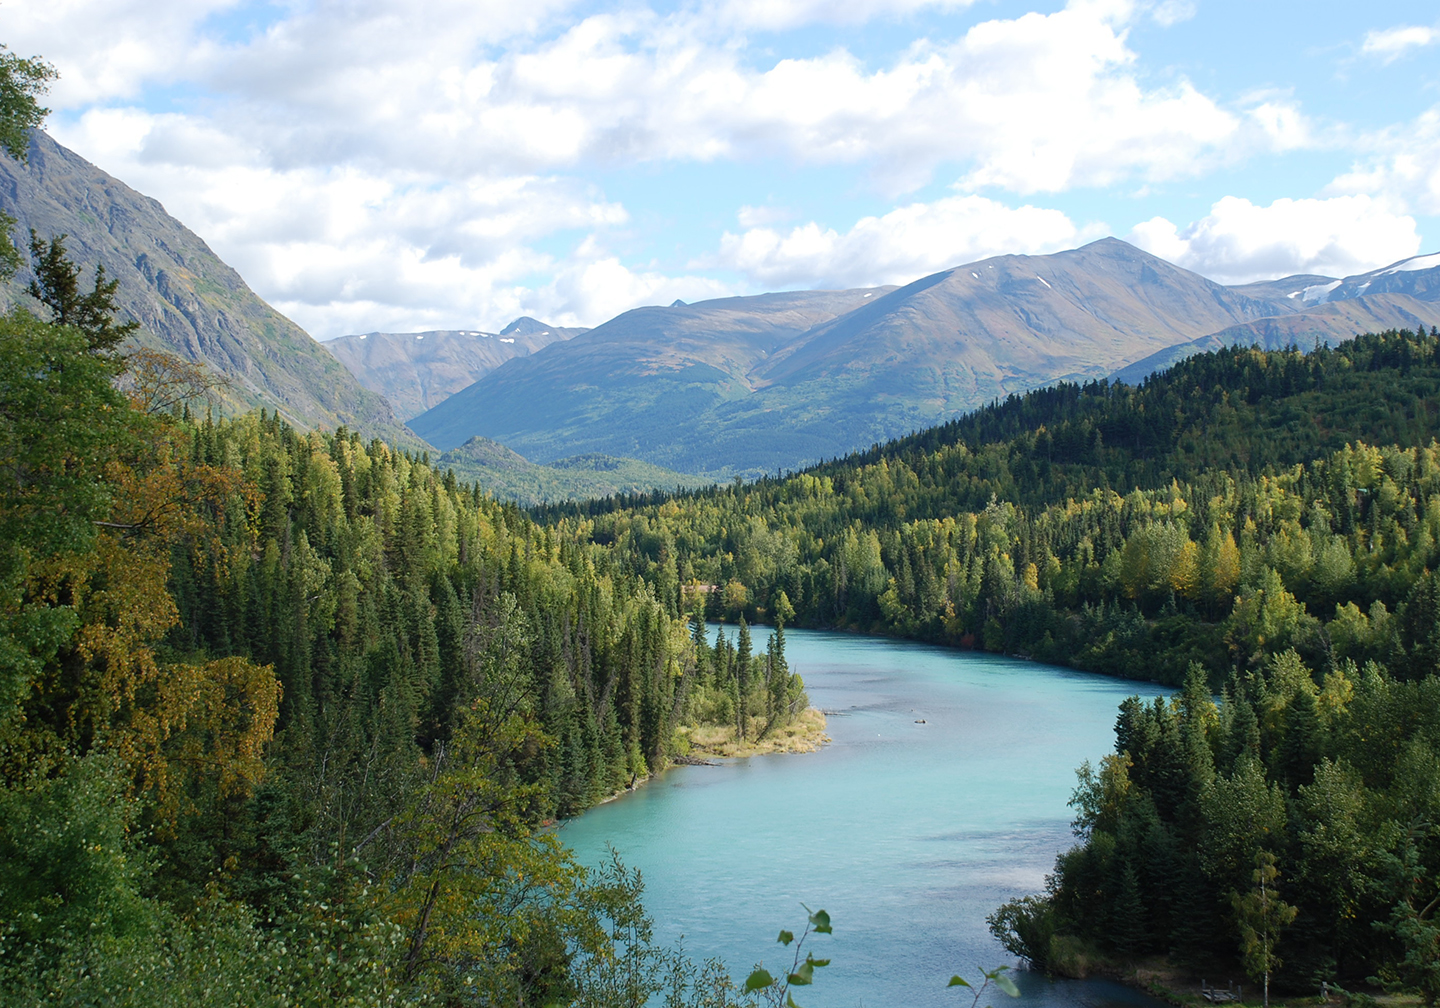 The Kenai River in Alaska, with dense forest on either side and mountains in the distance